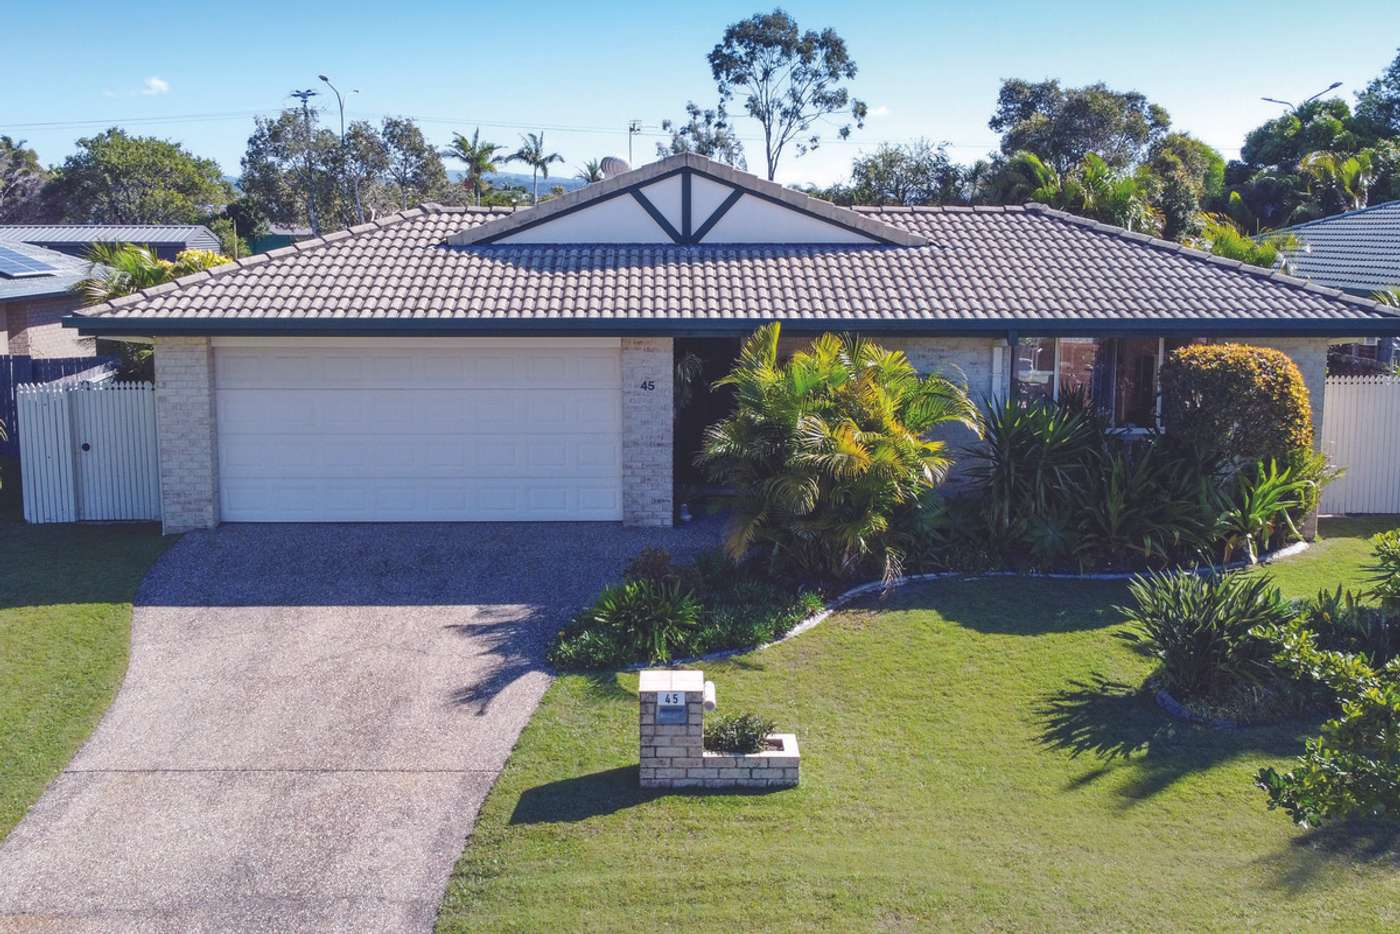 Main view of Homely house listing, 45 Harrier Drive, Burleigh Waters QLD 4220